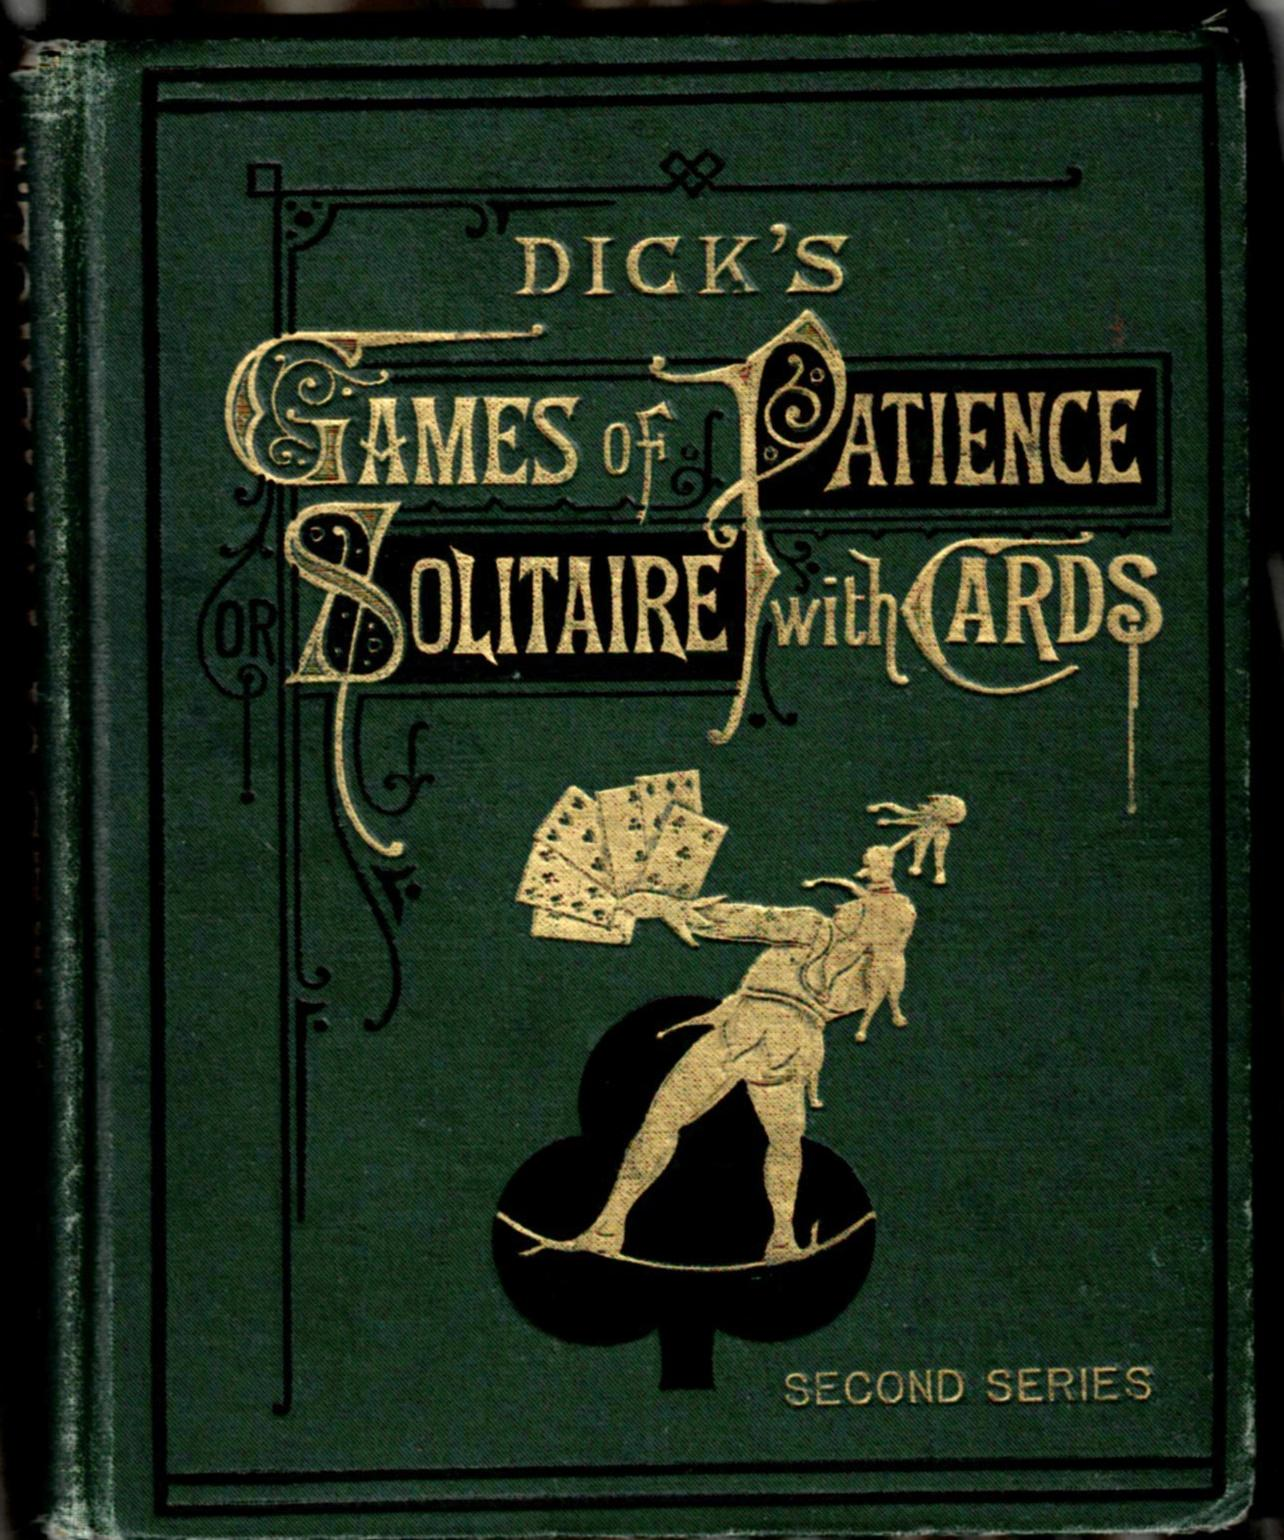 Image for Dick's Games of Patience or Solitaire With Cards: Second Series